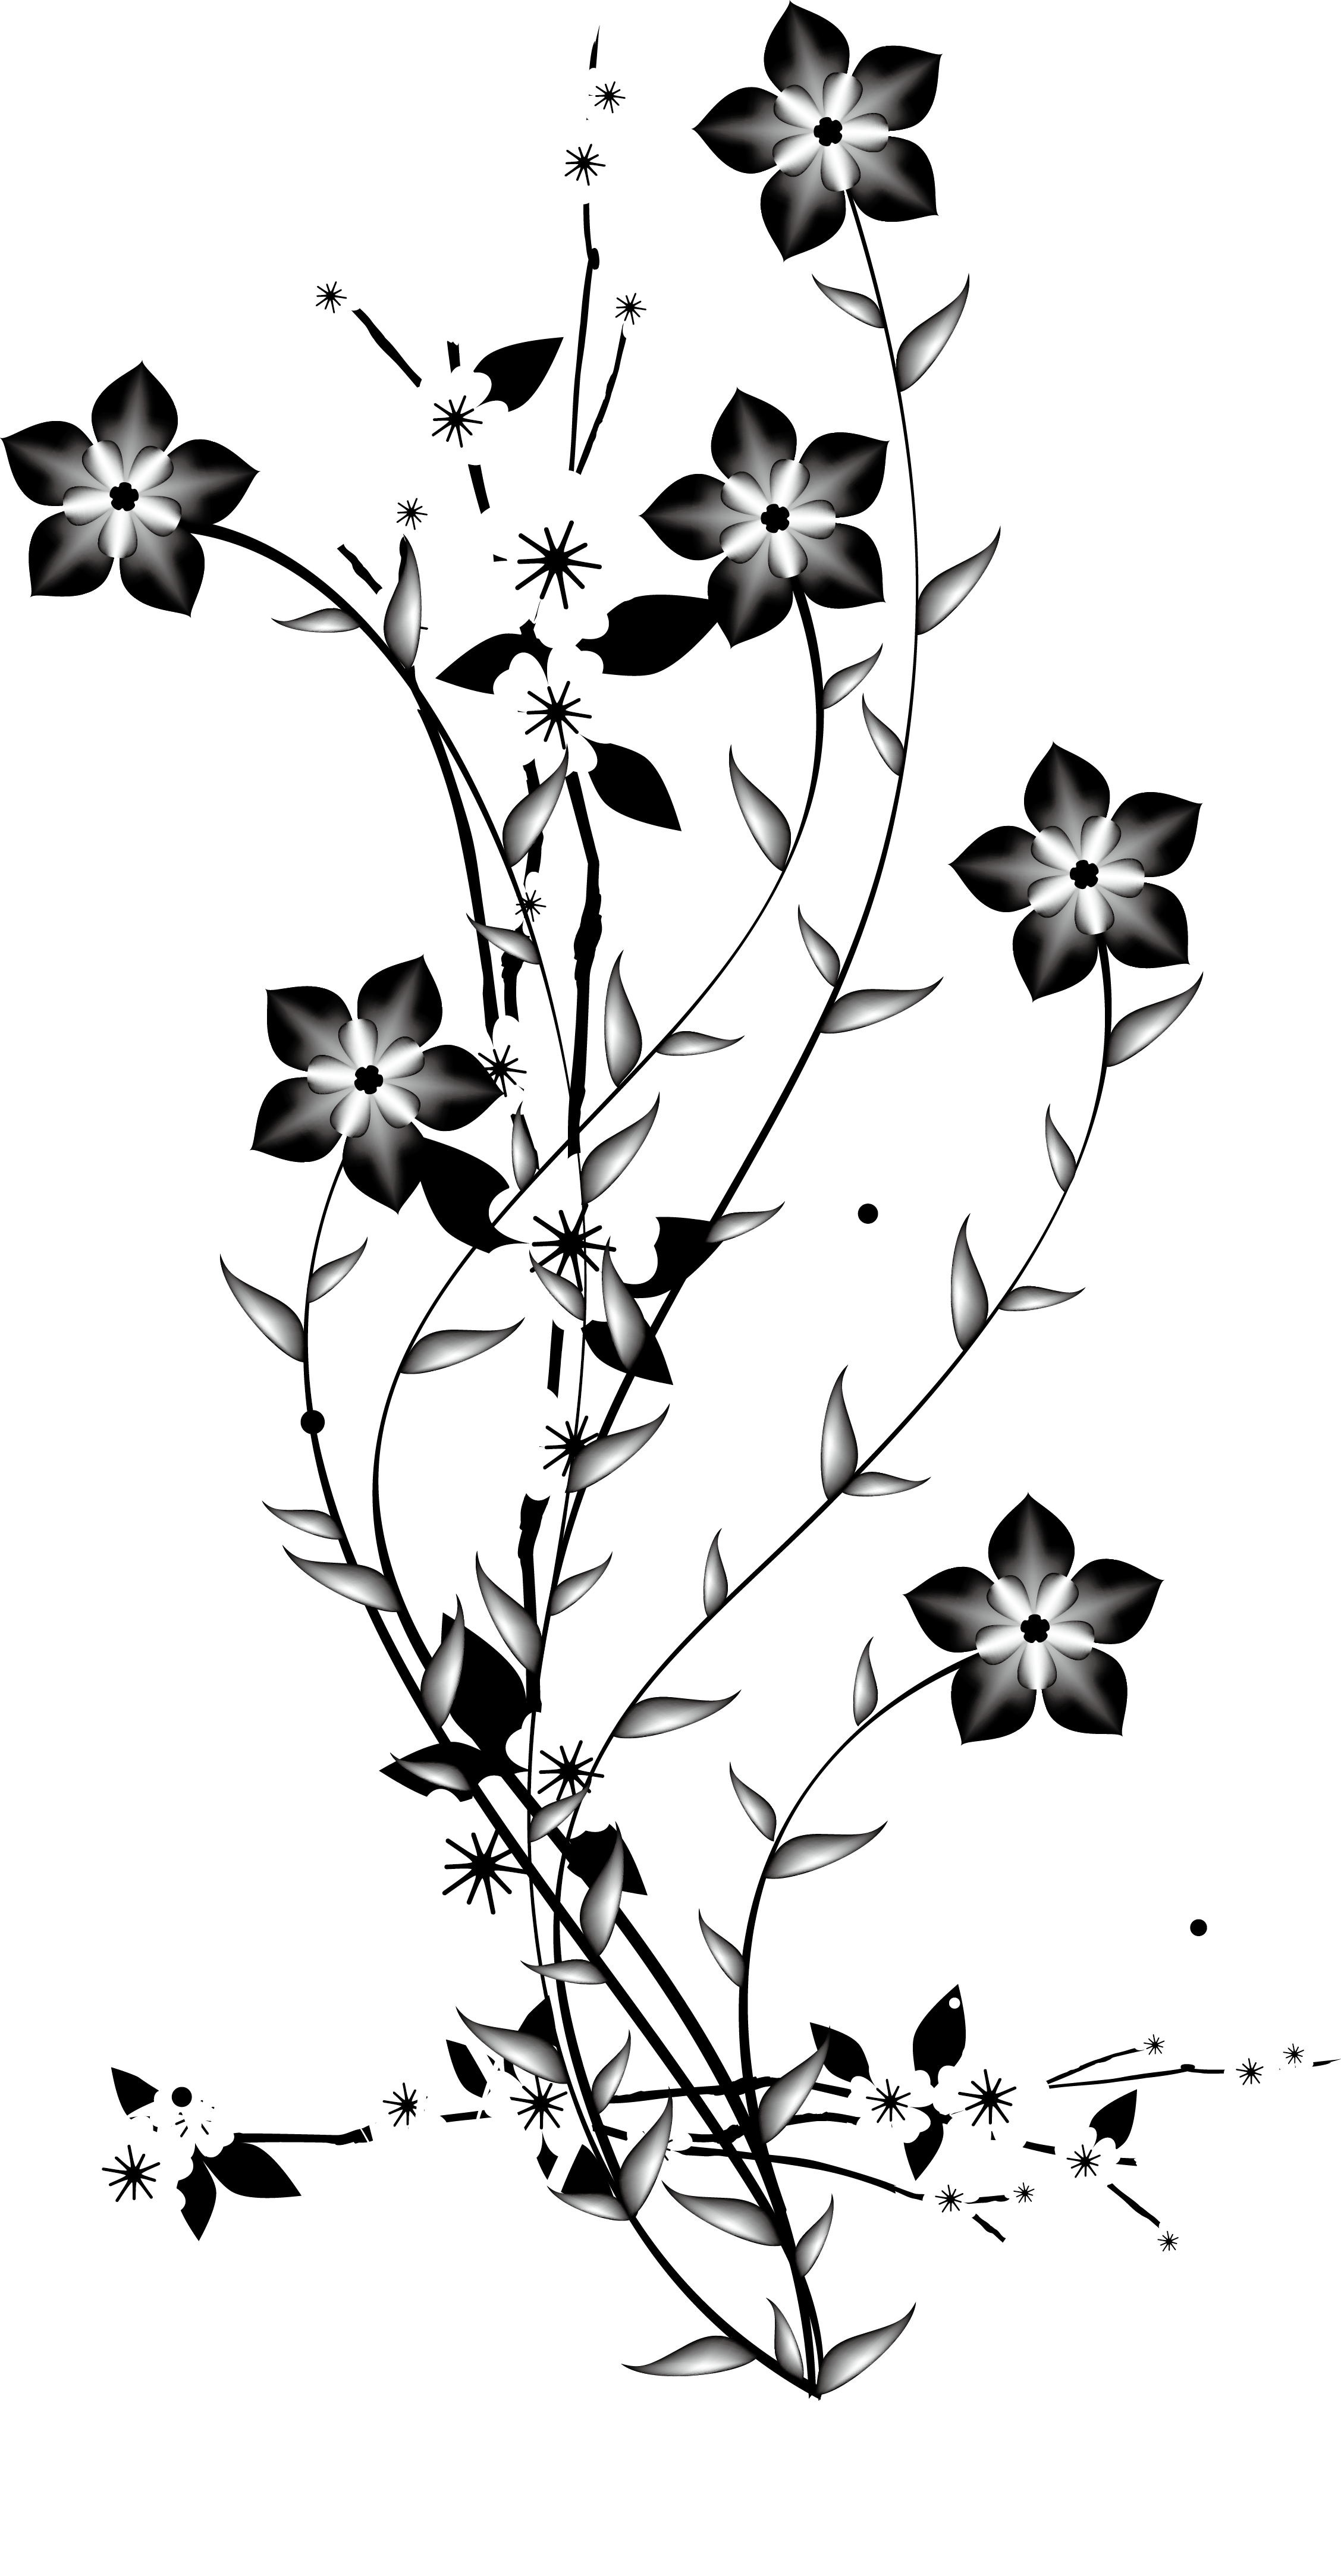 Flowers png black and white. China japan flower euclidean